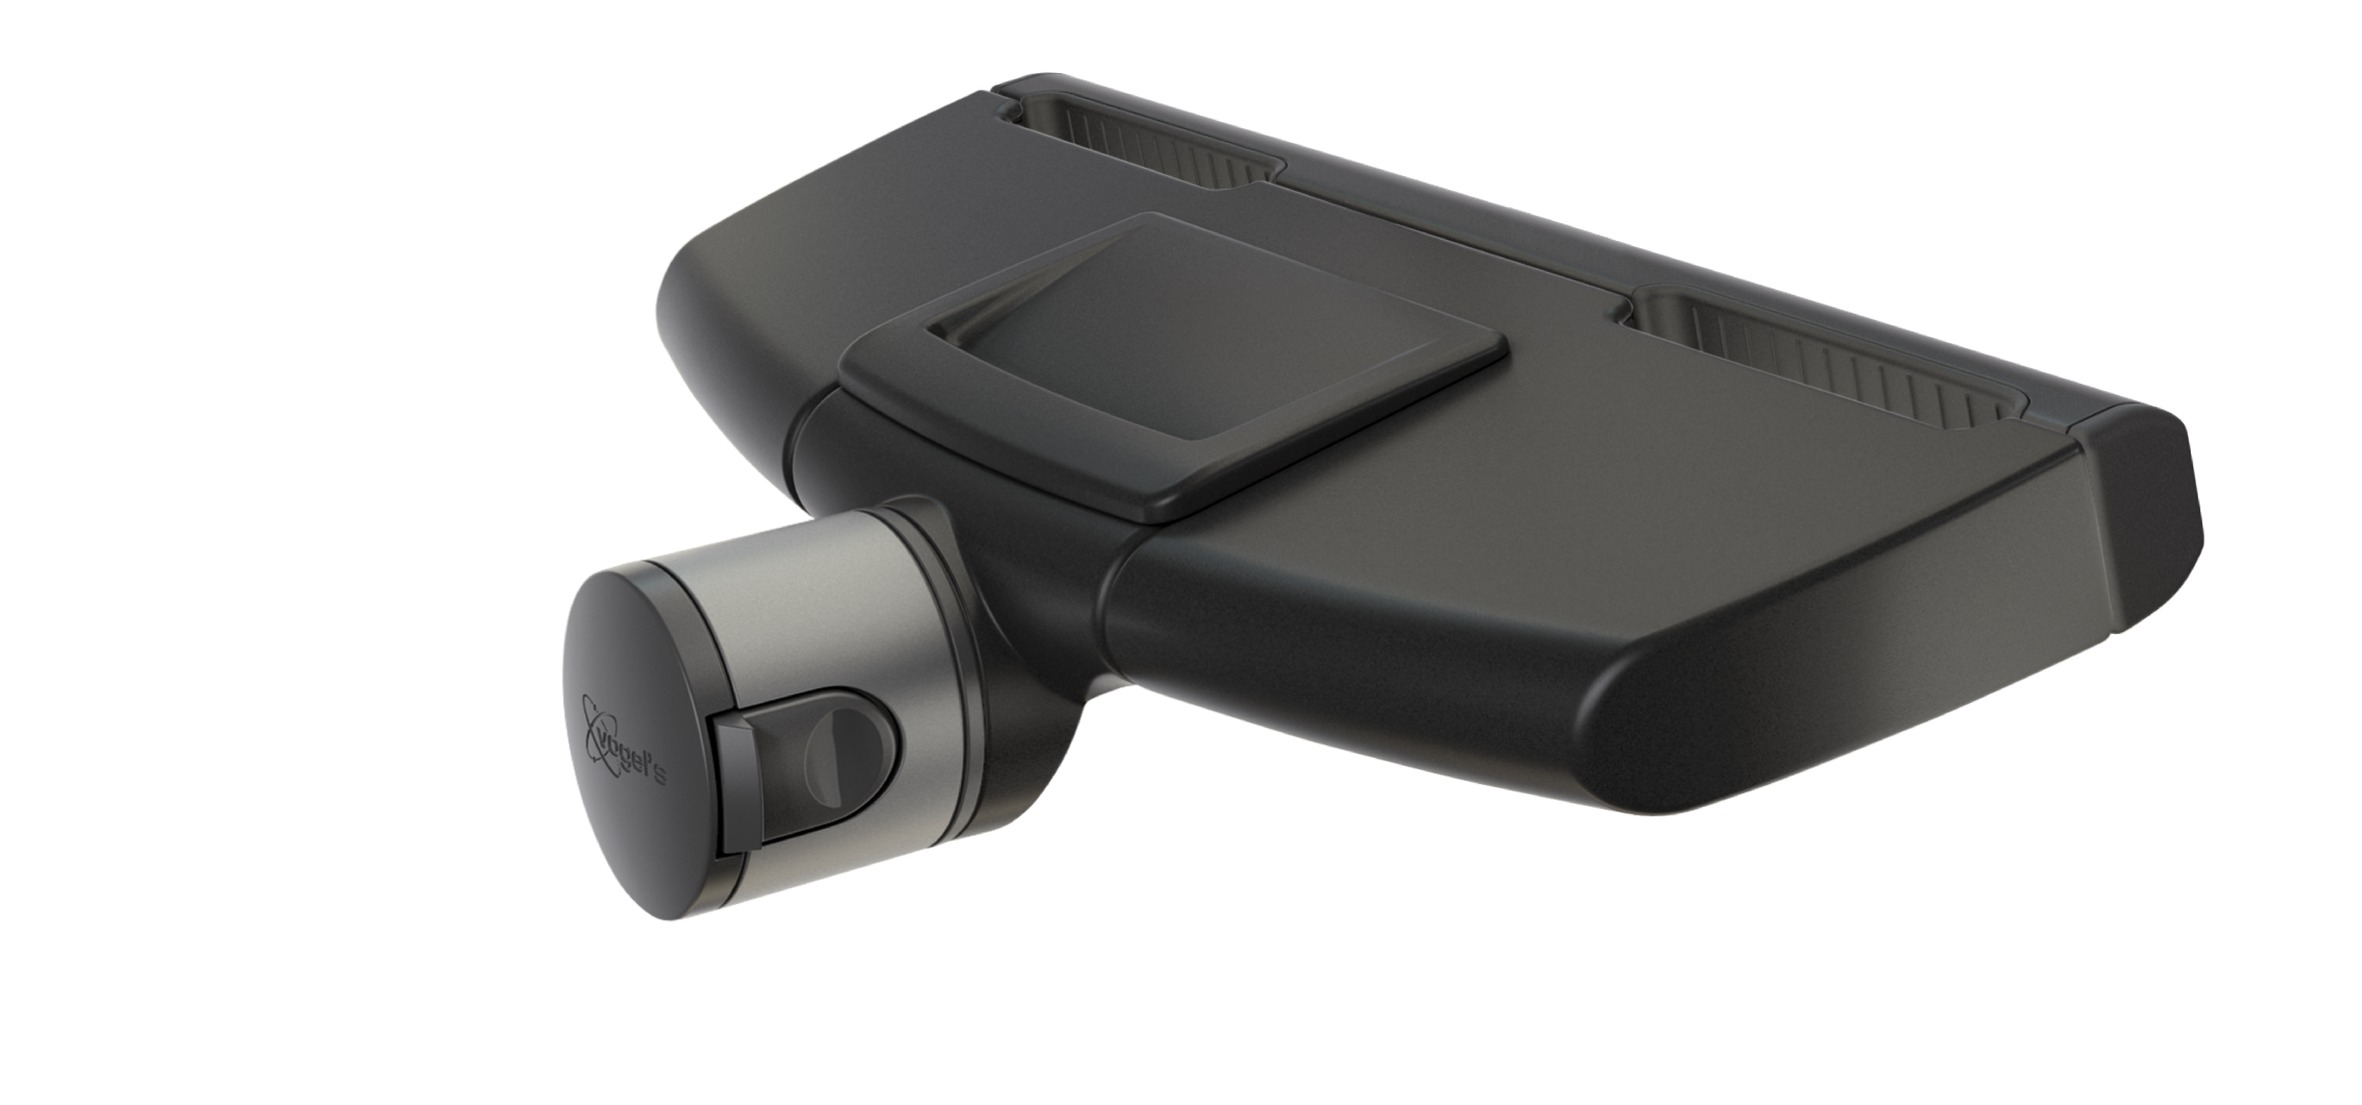 Vogel's TMM 115 RingO Car Mount Watch your tablet in the car